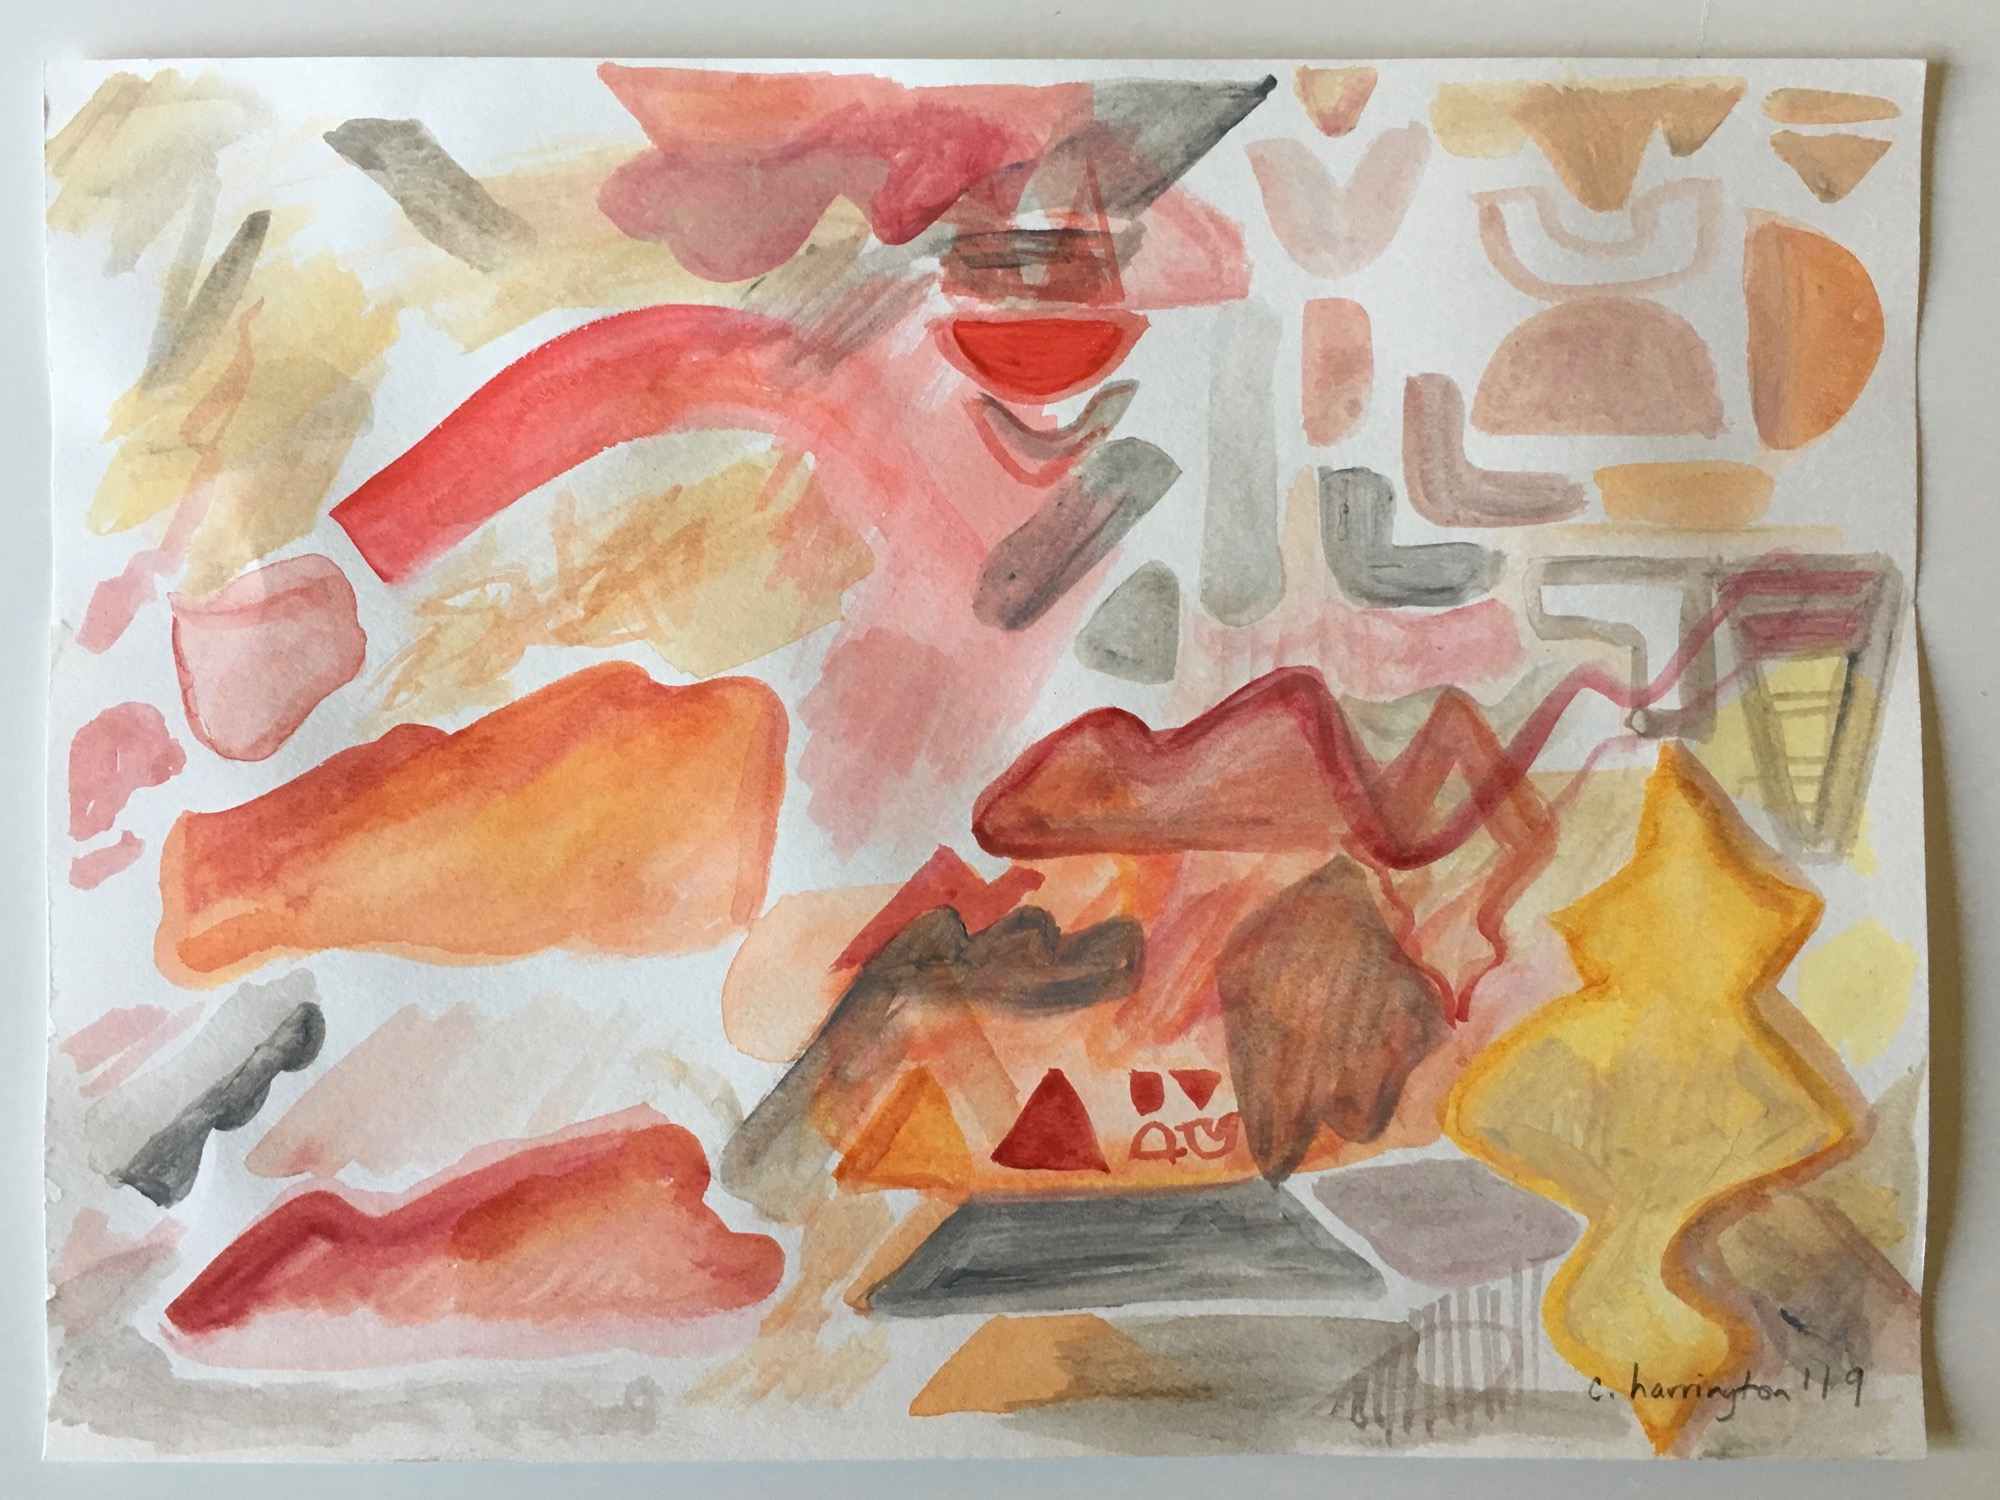 Fire Agate Canyon, Watercolor on Watercolor Paper, 9 x 12 inches, 2019